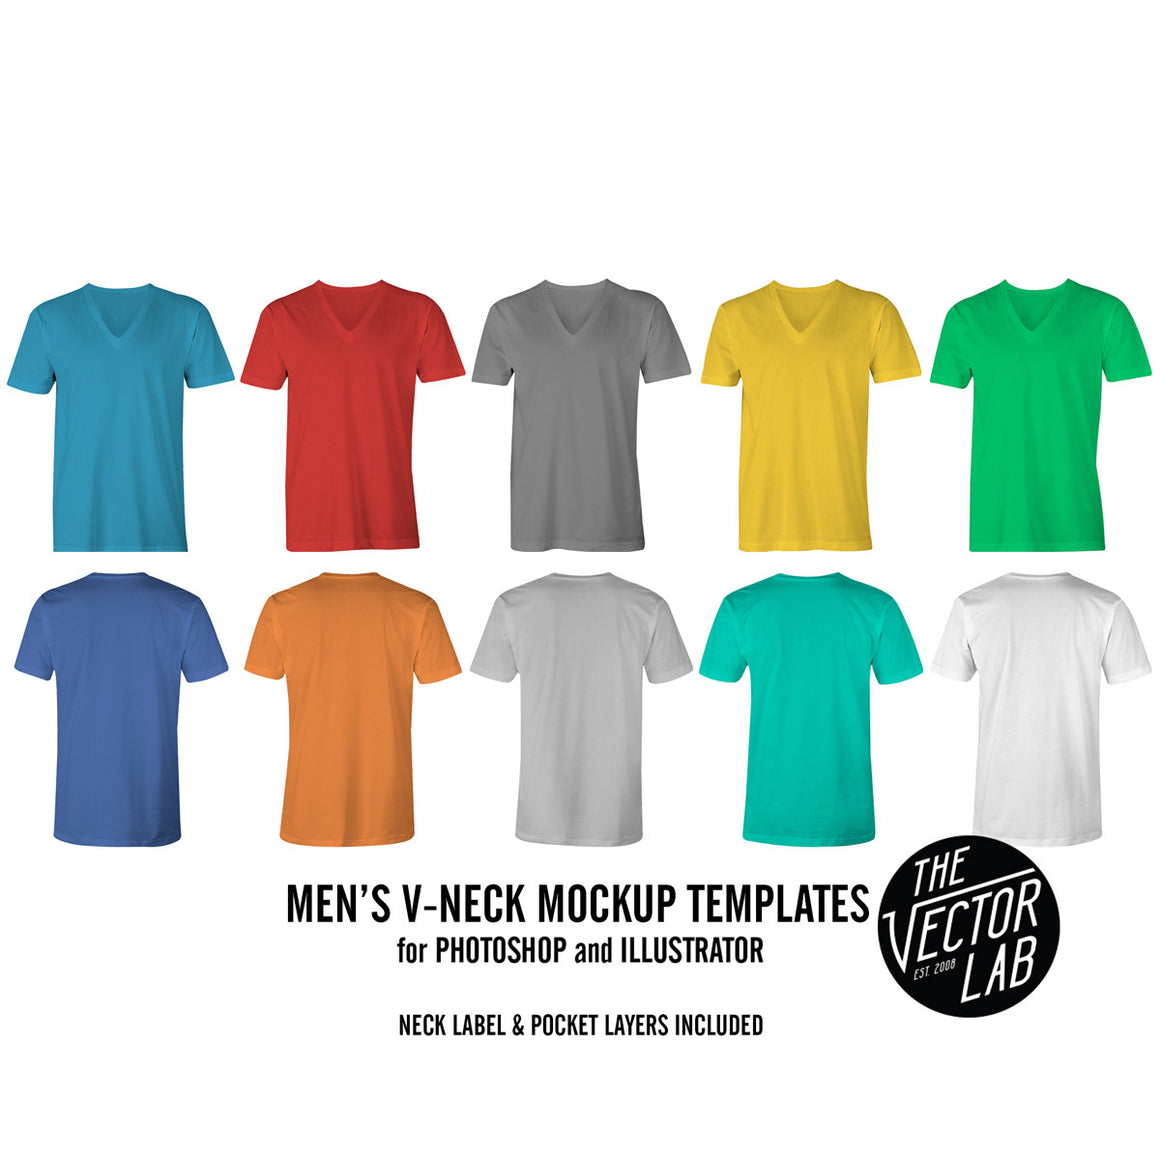 Men's V-Neck Mockup Templates Photoshop & Illustrator